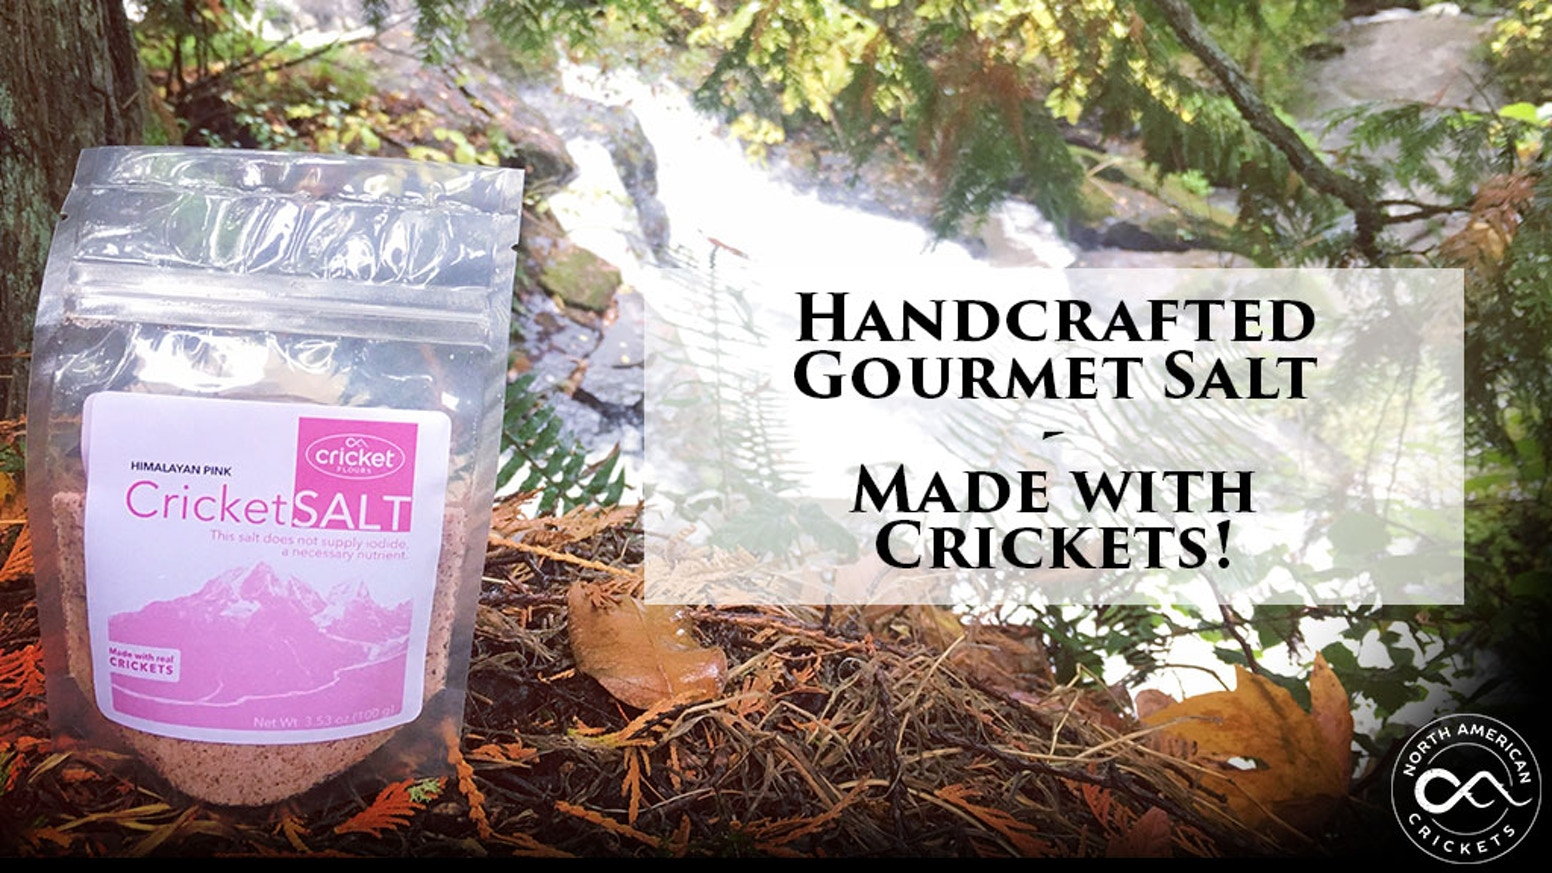 Cricket Salt - Taste the Future with handcrafted gourmet salts made with real crickets here in Portland, Oregon - ships early December.